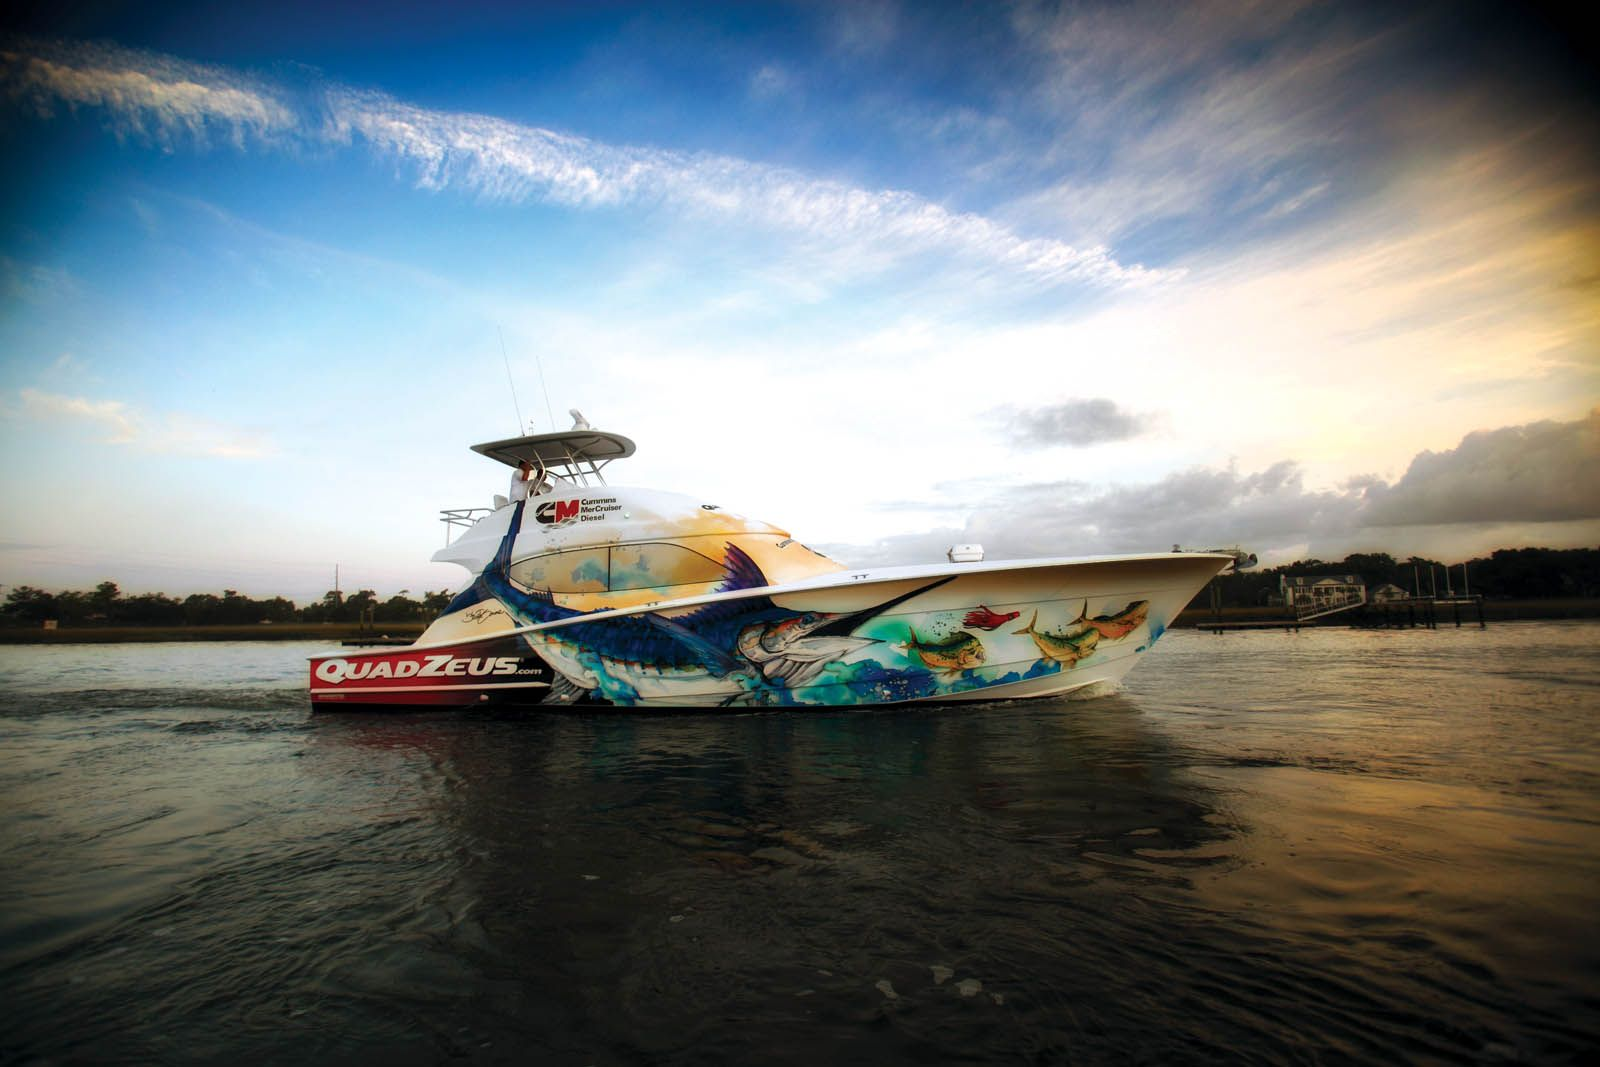 Biggest Boat Wrap In The World Vehicle Wraps Pinterest Boat - Sporting boat decalsbest boat wraps custom vinyl images on pinterest boat wraps